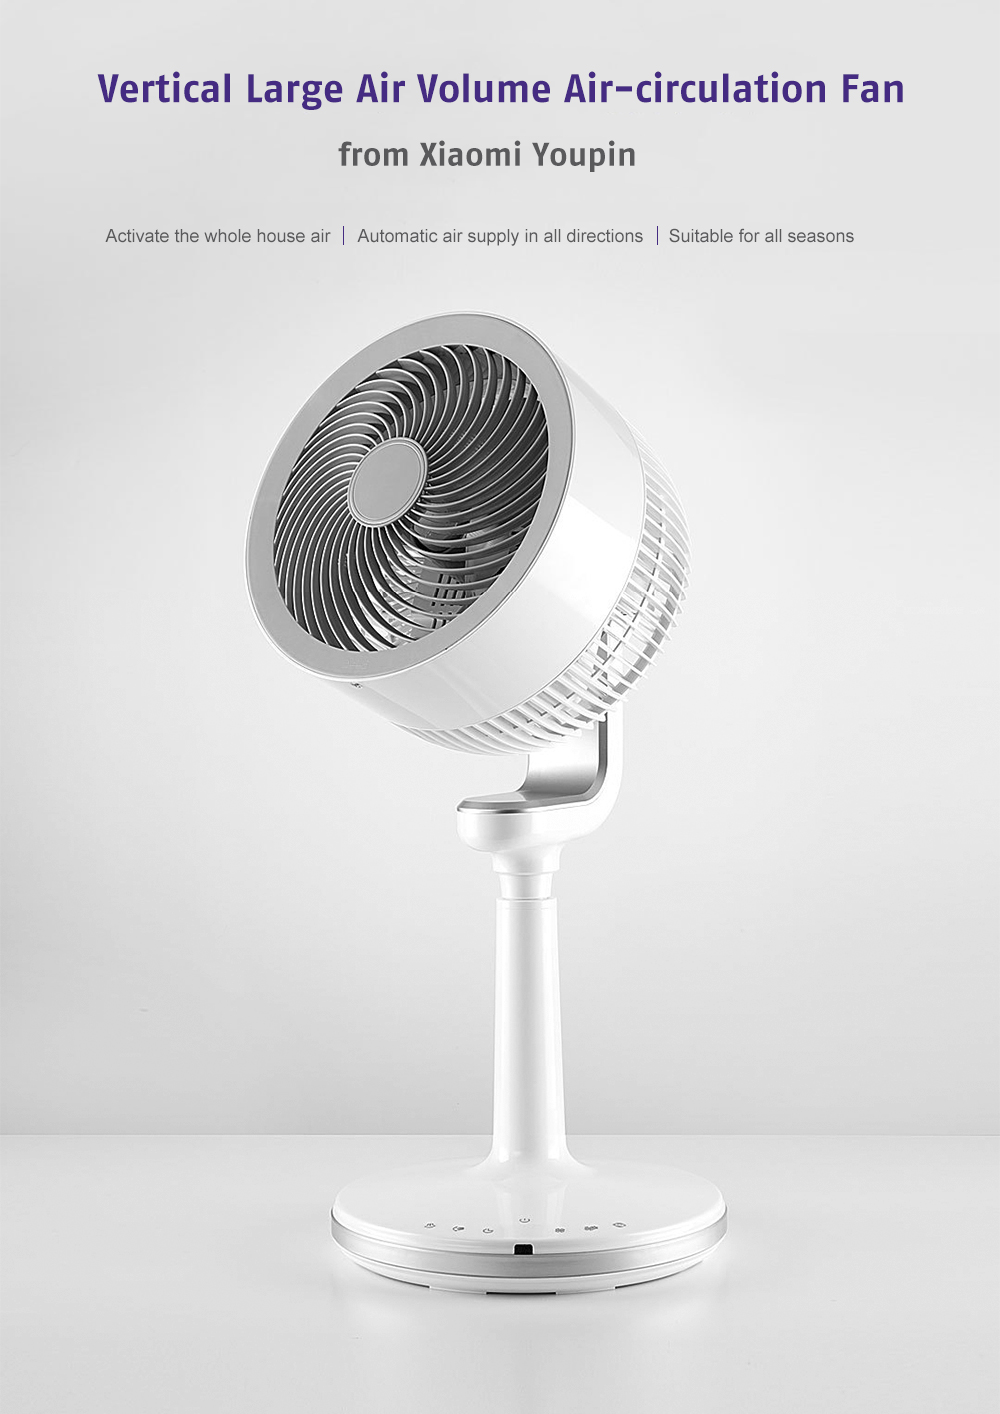 Vertical Large Air Volume Air-circulation Fan Electronic Air-conditioning Partner from Xiaomi Youpin- White